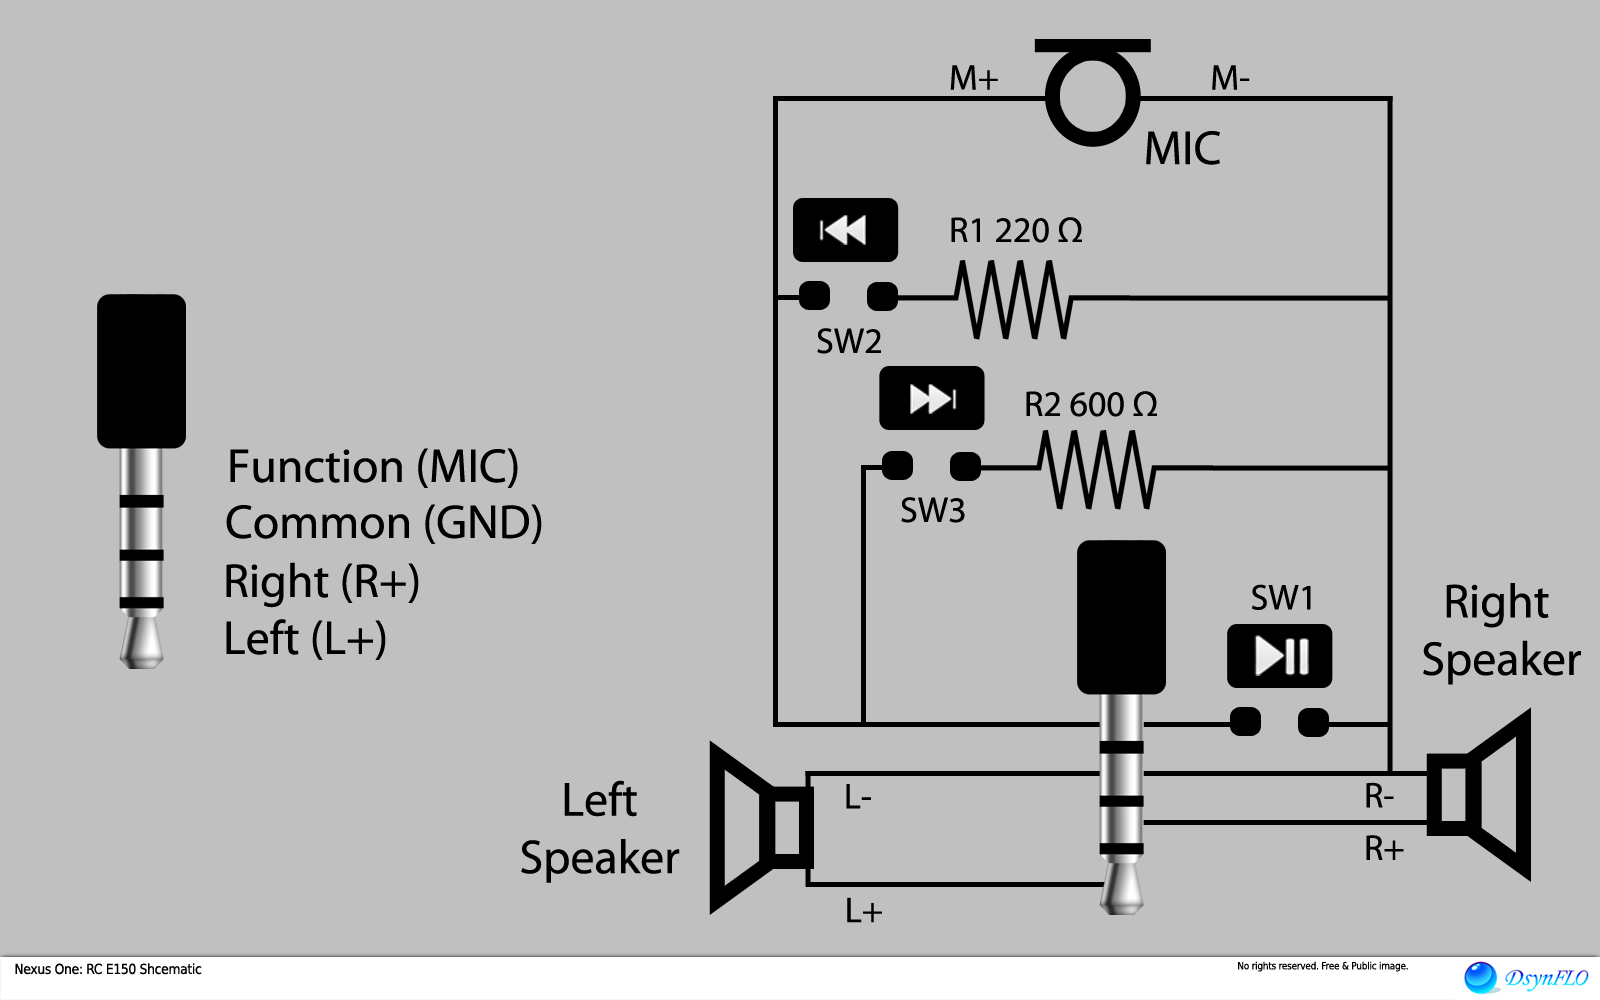 cb mic wiring diagrams cb image wiring diagram cb radio microphone wiring diagram blue star wiring diagrams for on cb mic wiring diagrams